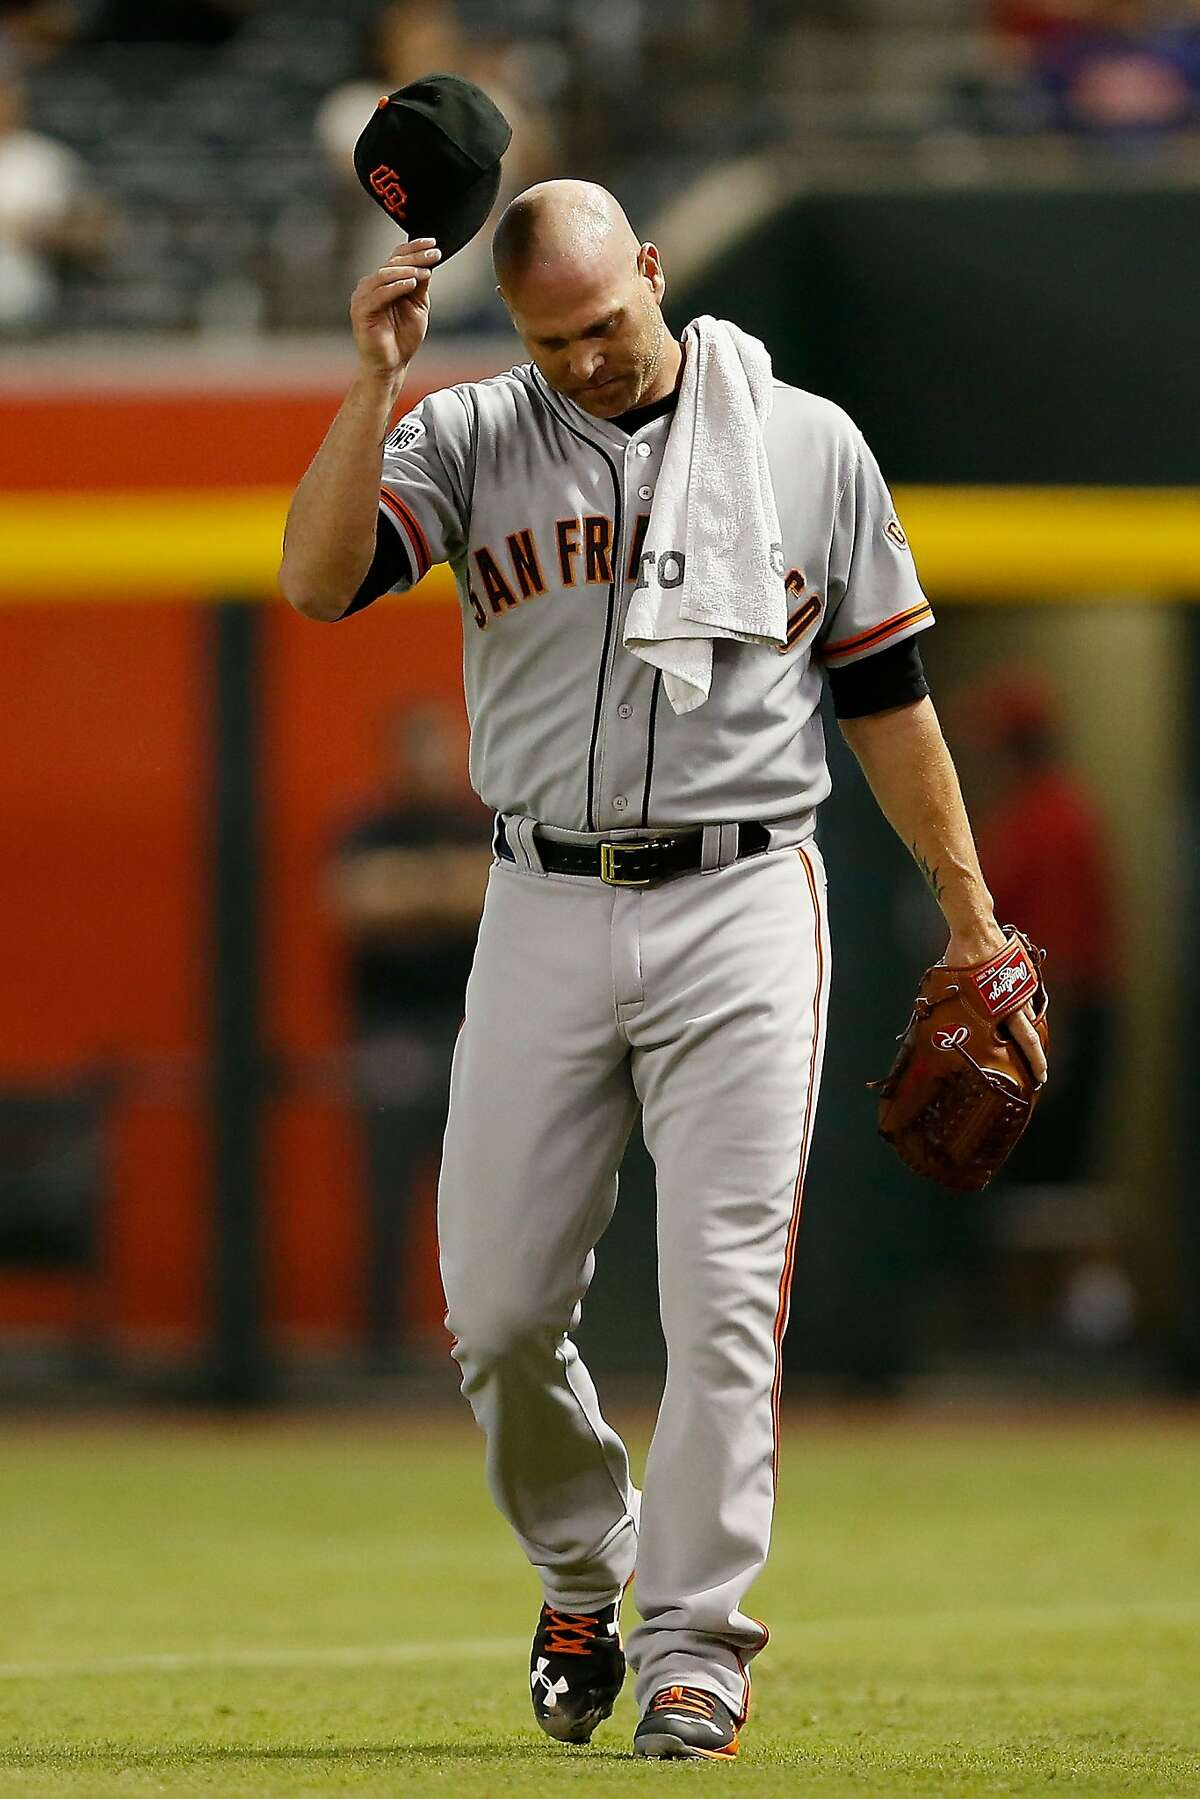 Starting pitcher Tim Hudson #17 of the San Francisco Giants walks to the dugout before the MLB game against the Arizona Diamondbacks at Chase Field on September 8, 2015 in Phoenix, Arizona.